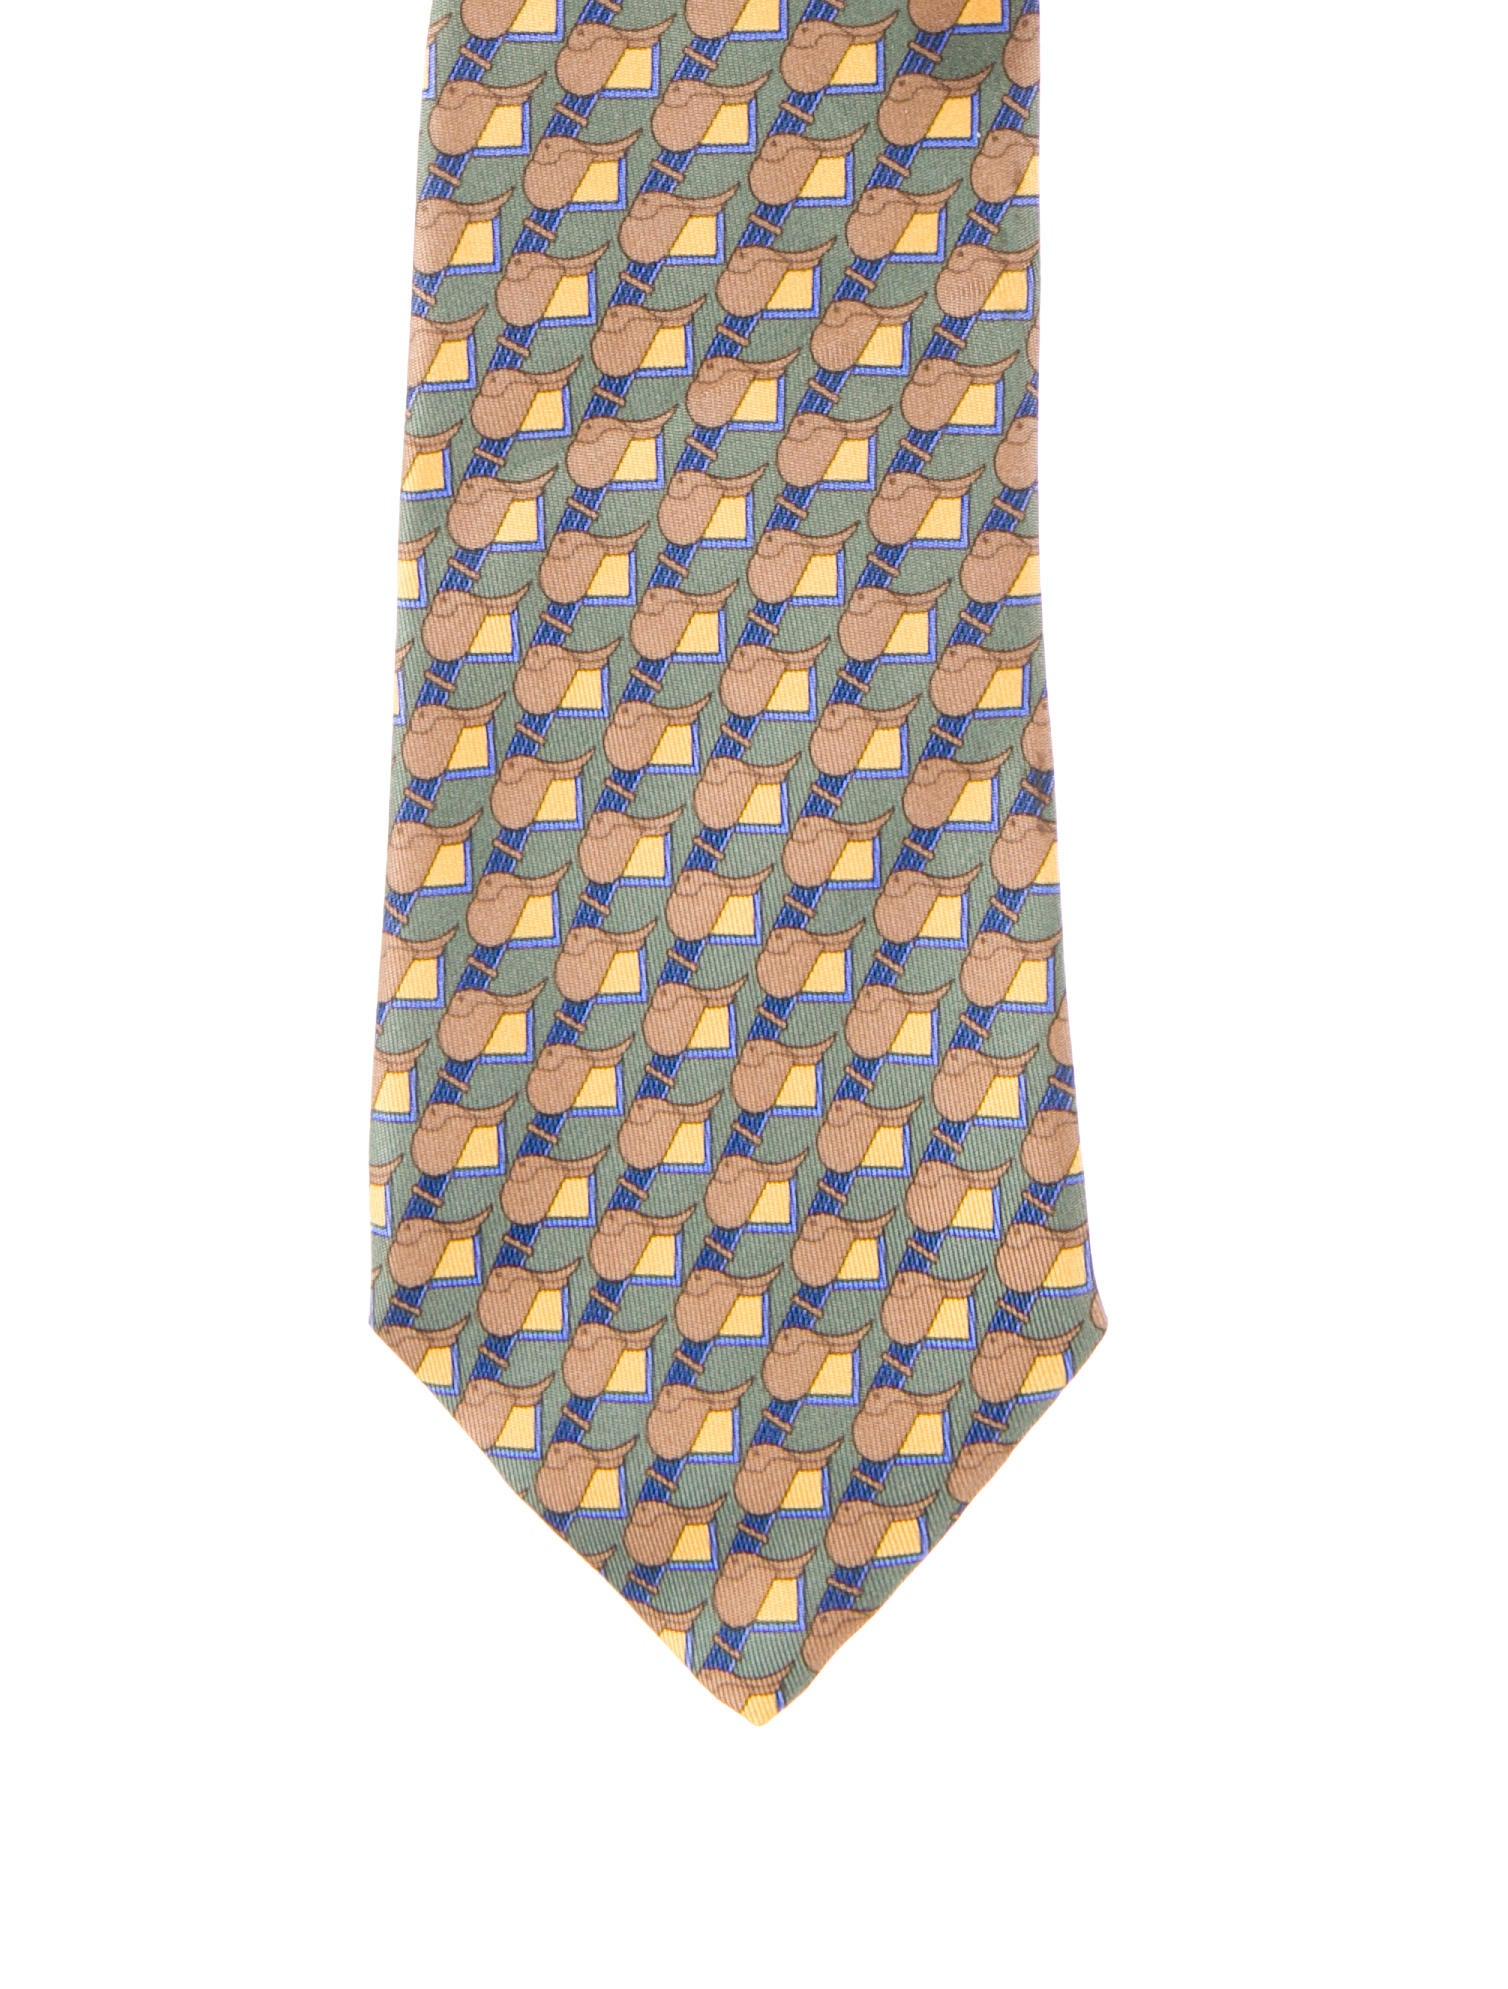 herm 232 s tie suiting accessories her37371 the realreal